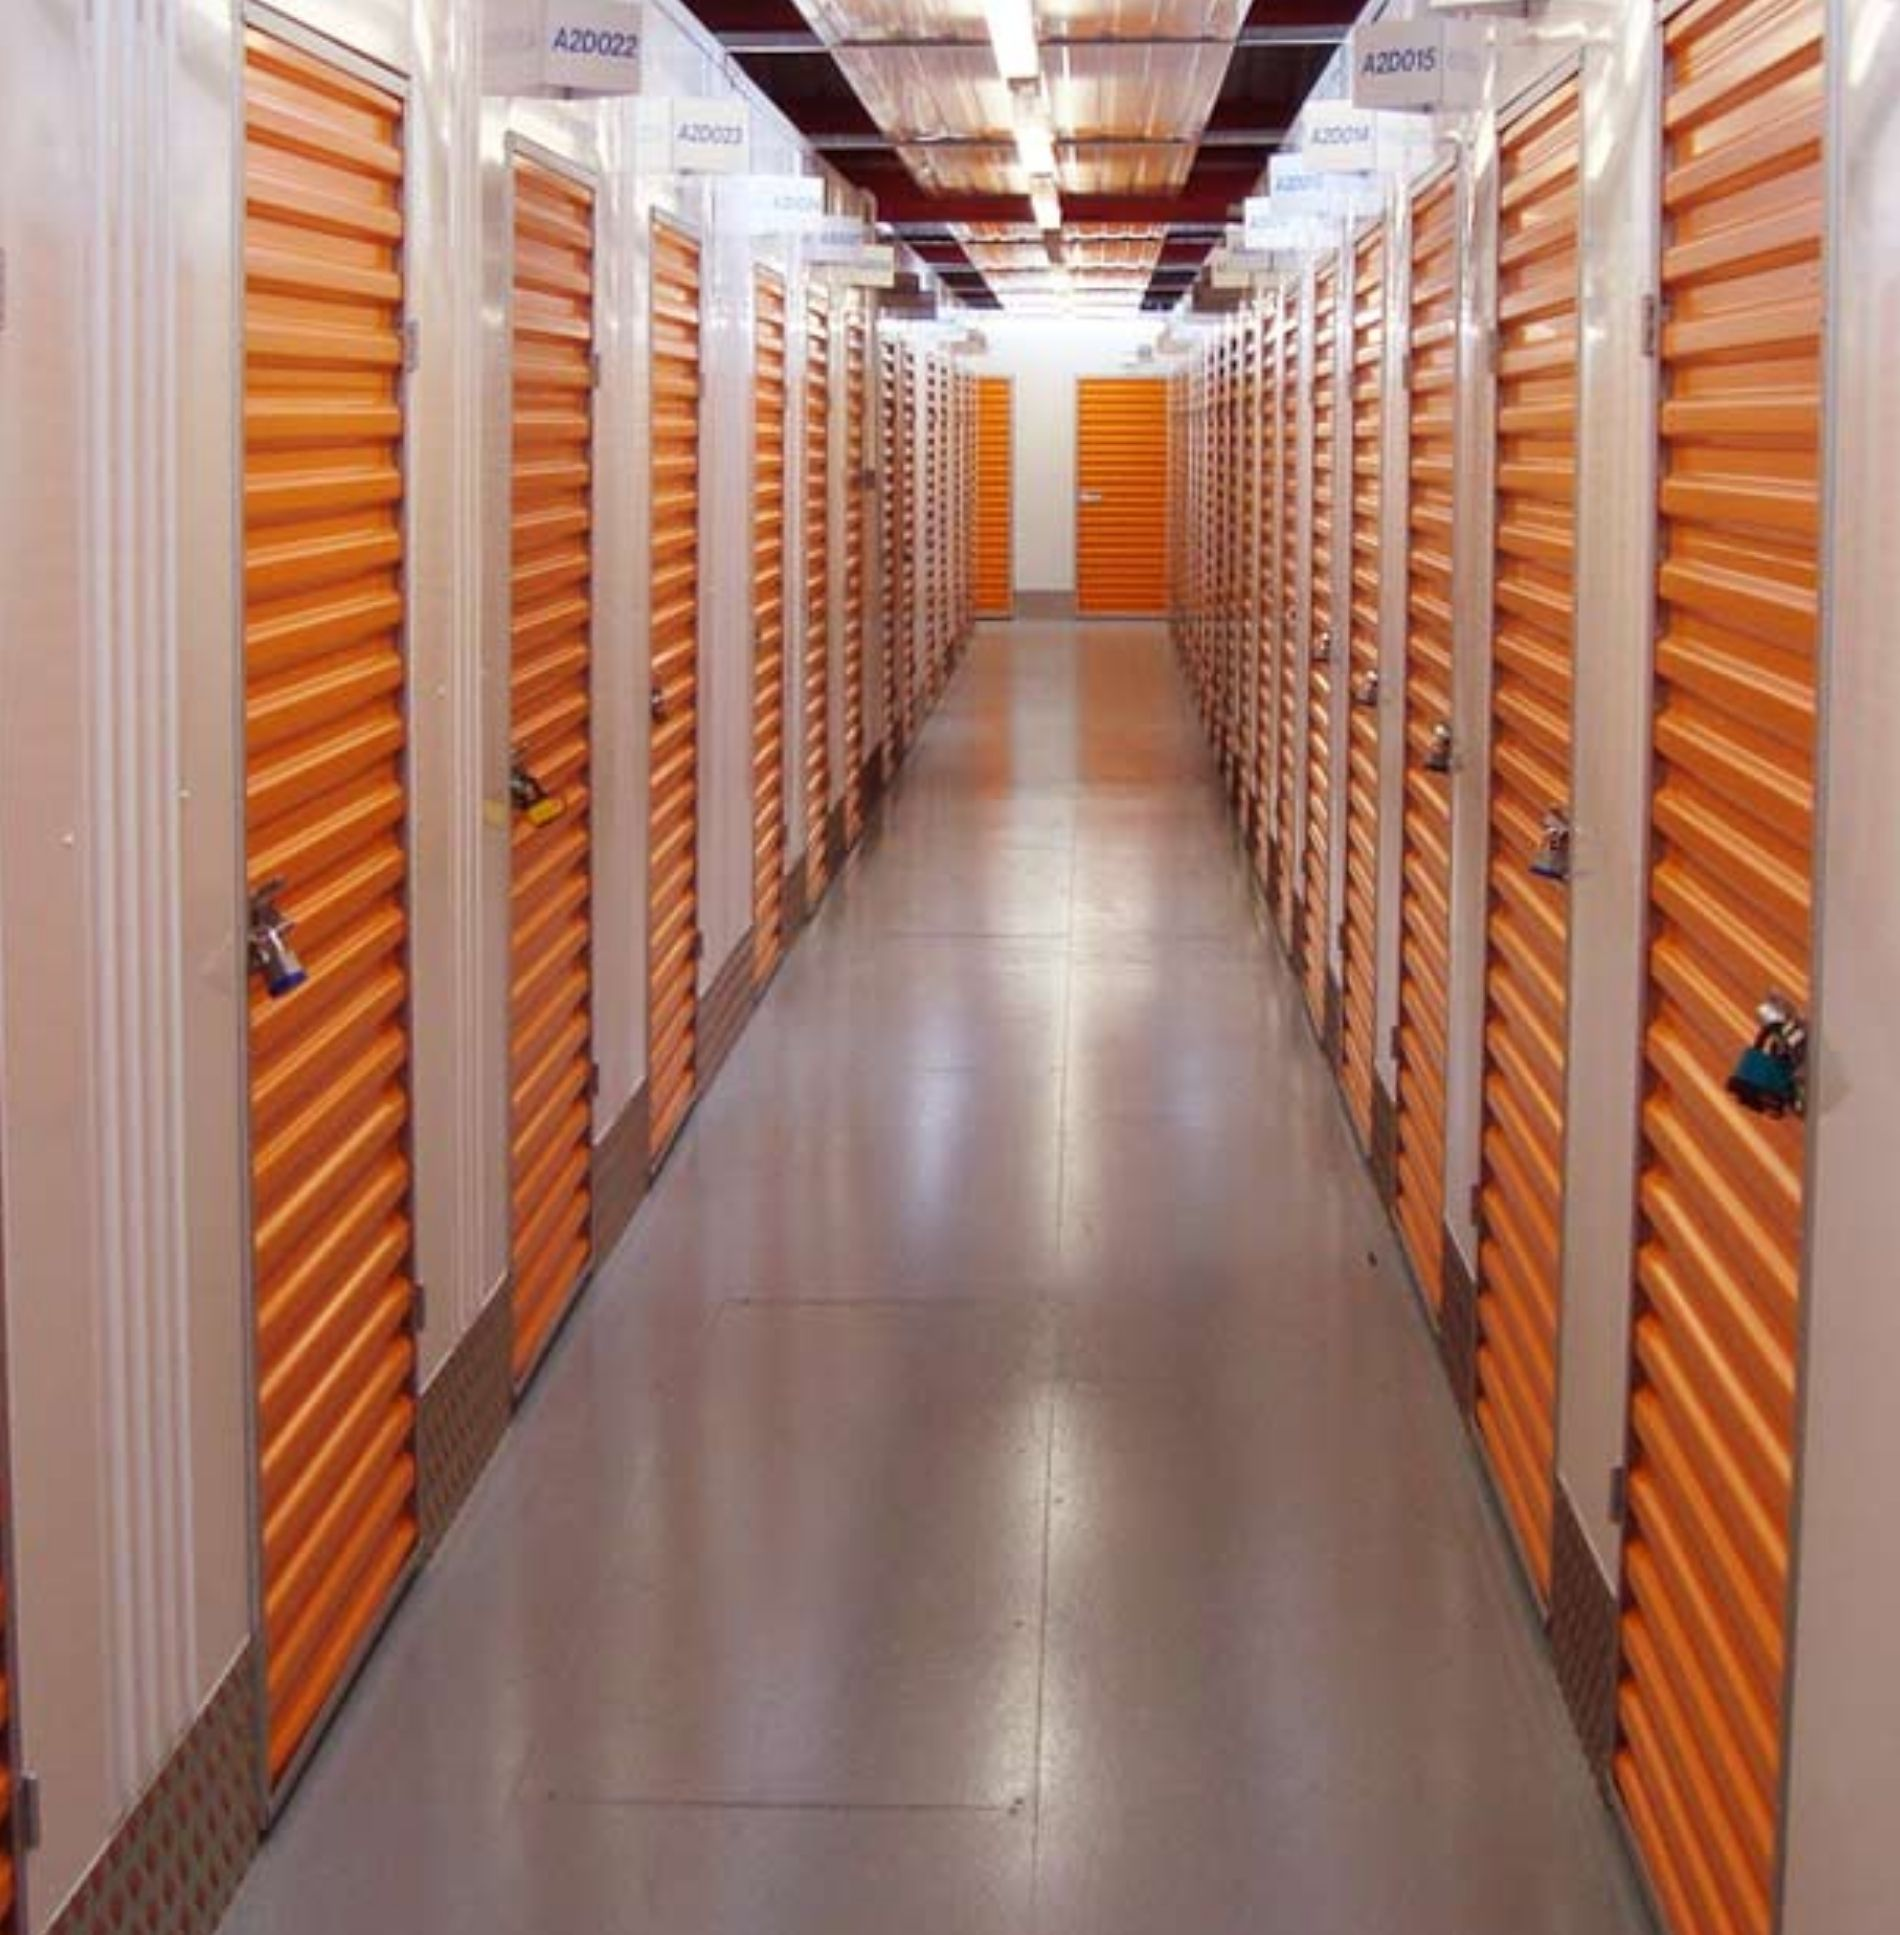 5 Manageable Steps for Cleaning Your Self-Storage Unit